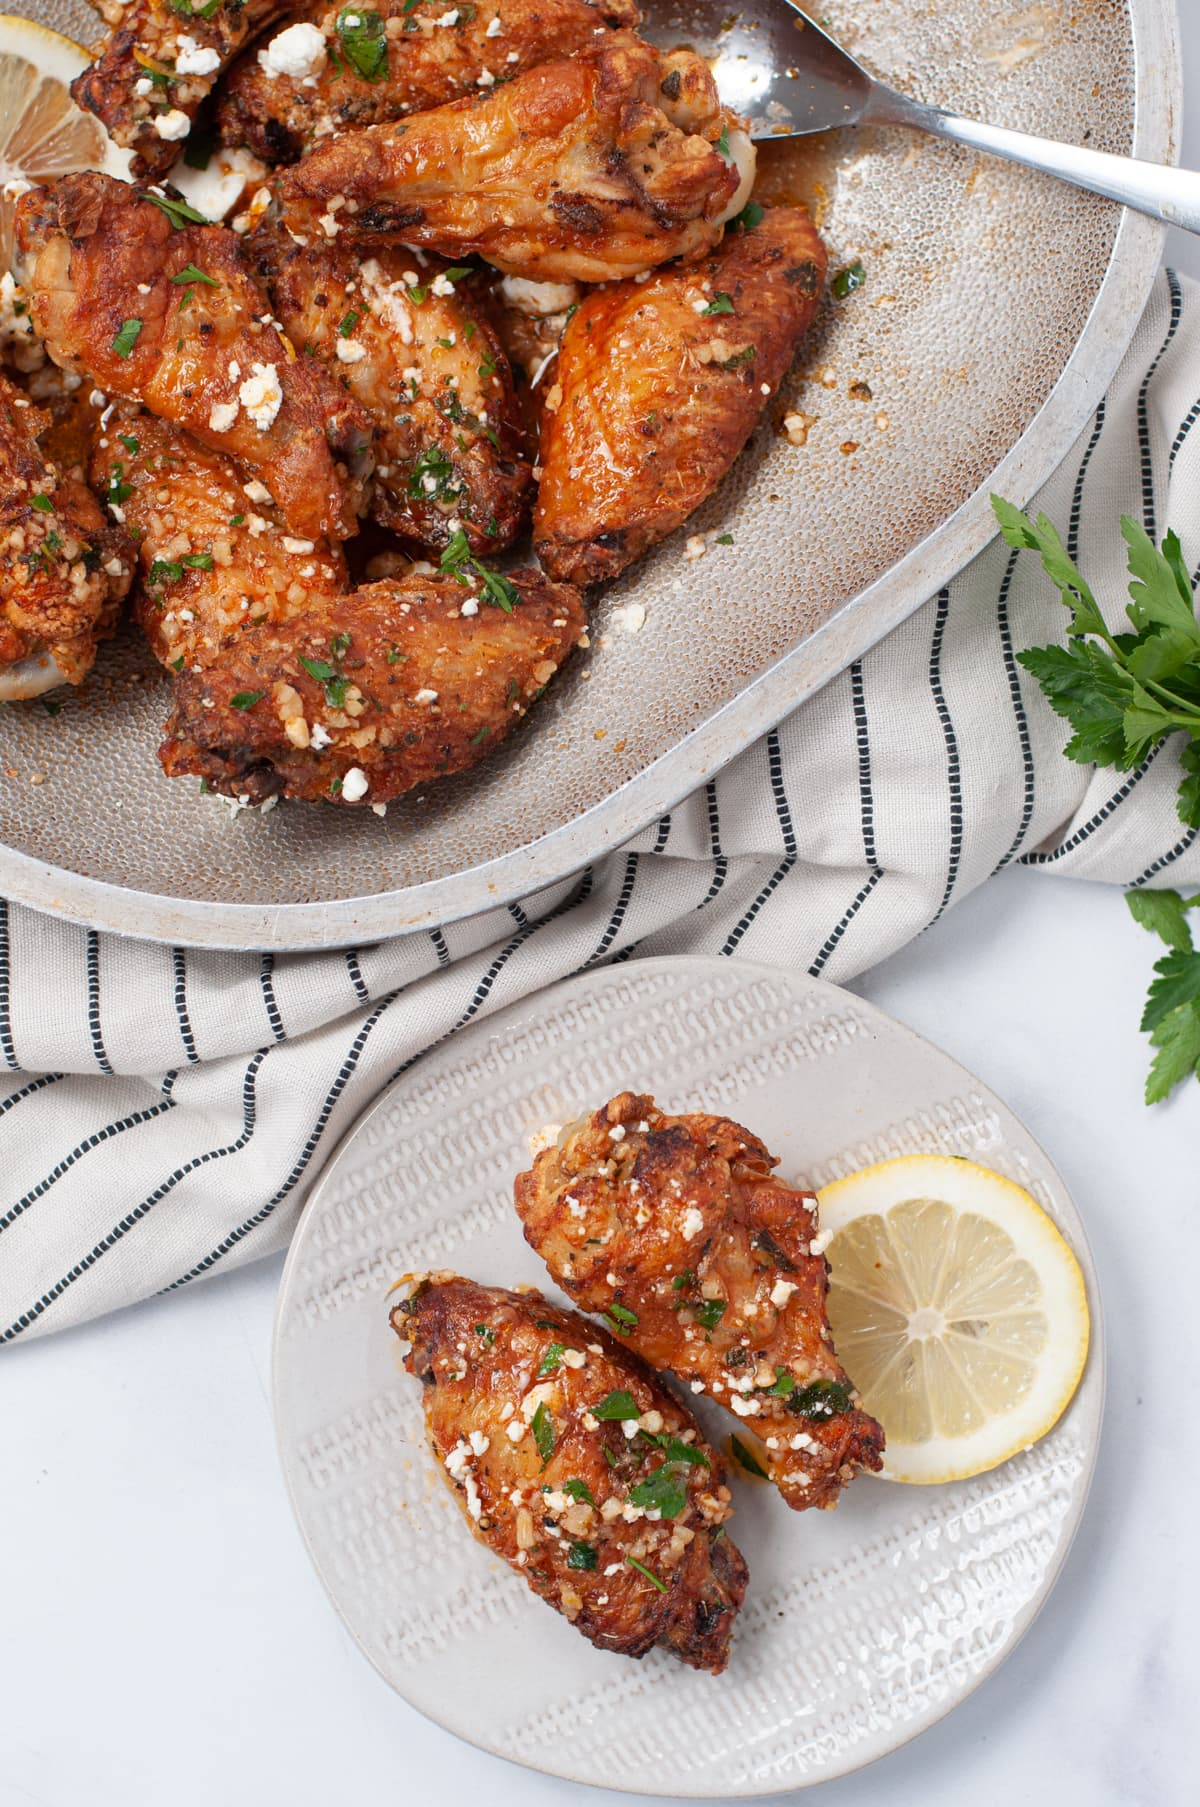 serving platter of chicken wings, next to a gray plate with 2 crispy chicken wings, topped with feta cheese and parsley